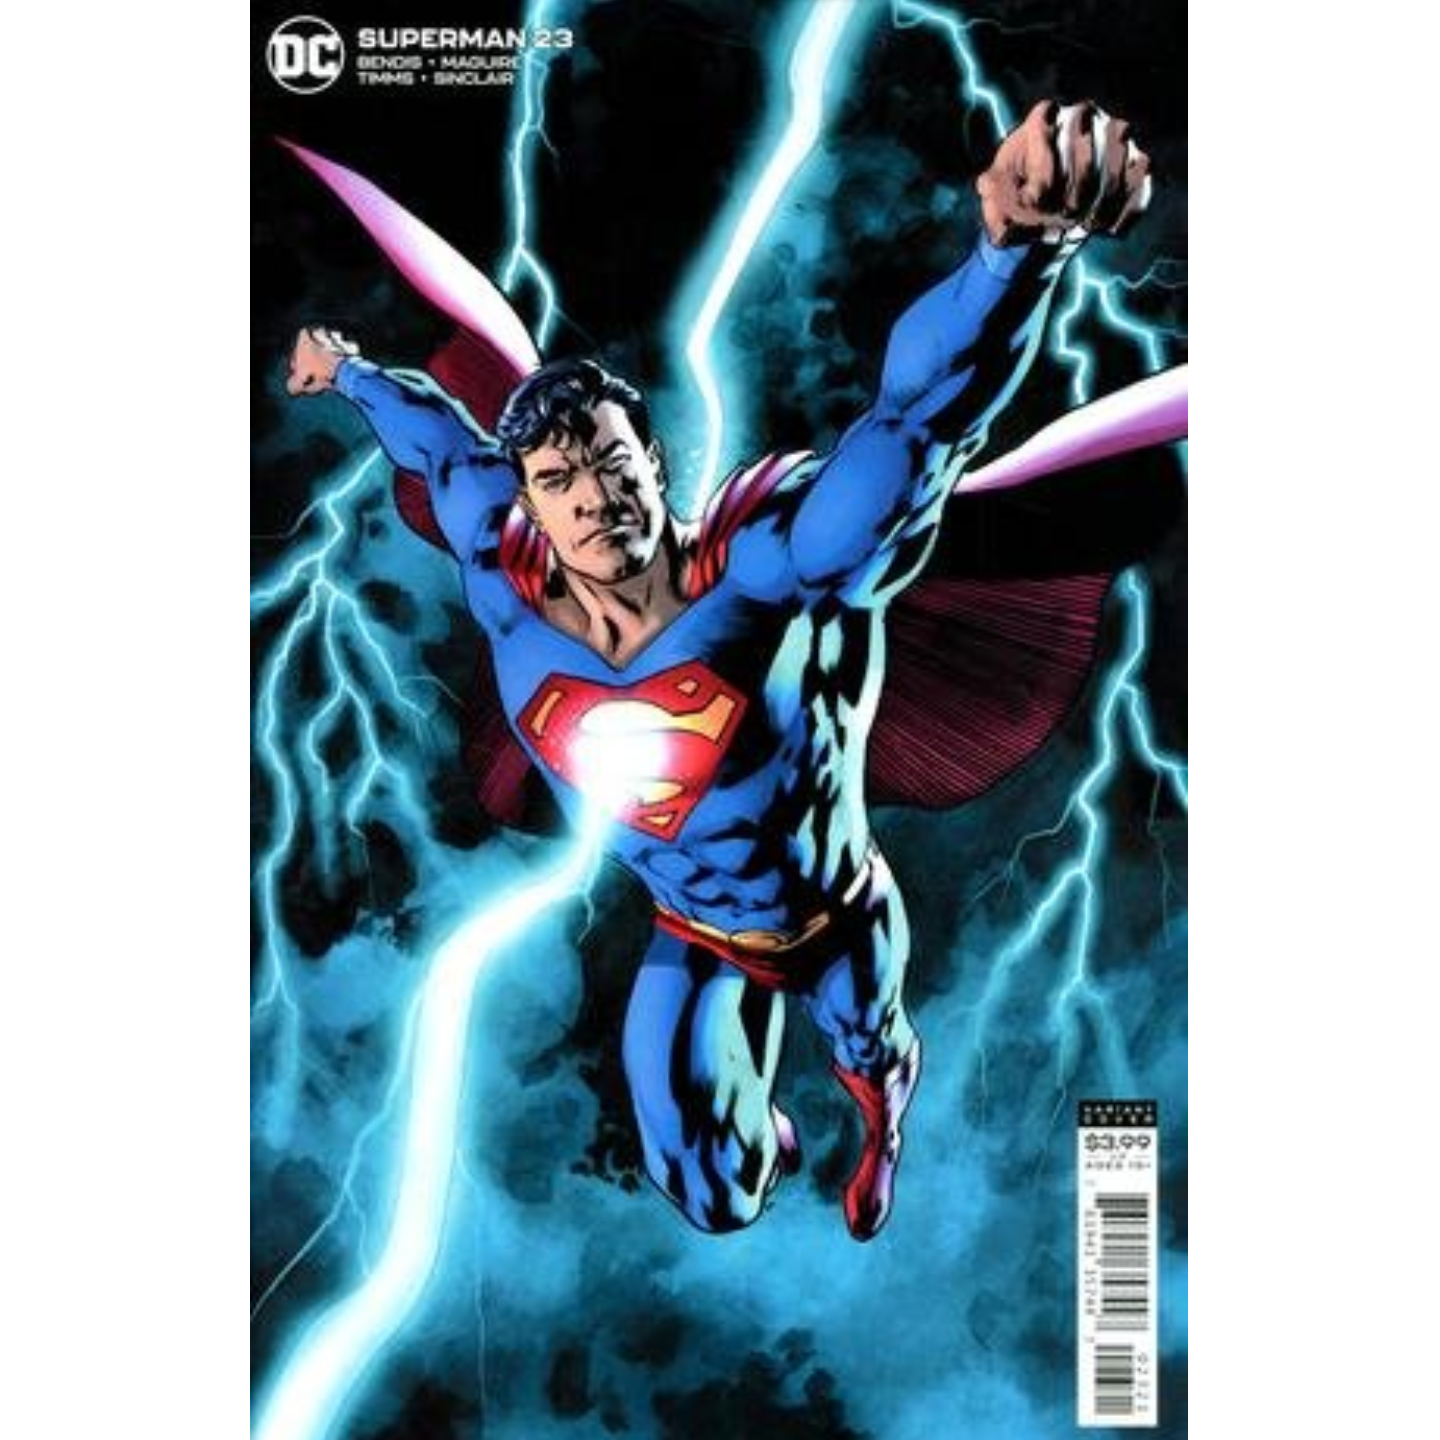 SUPERMAN #23 CVR B BRYAN HITCH VAR